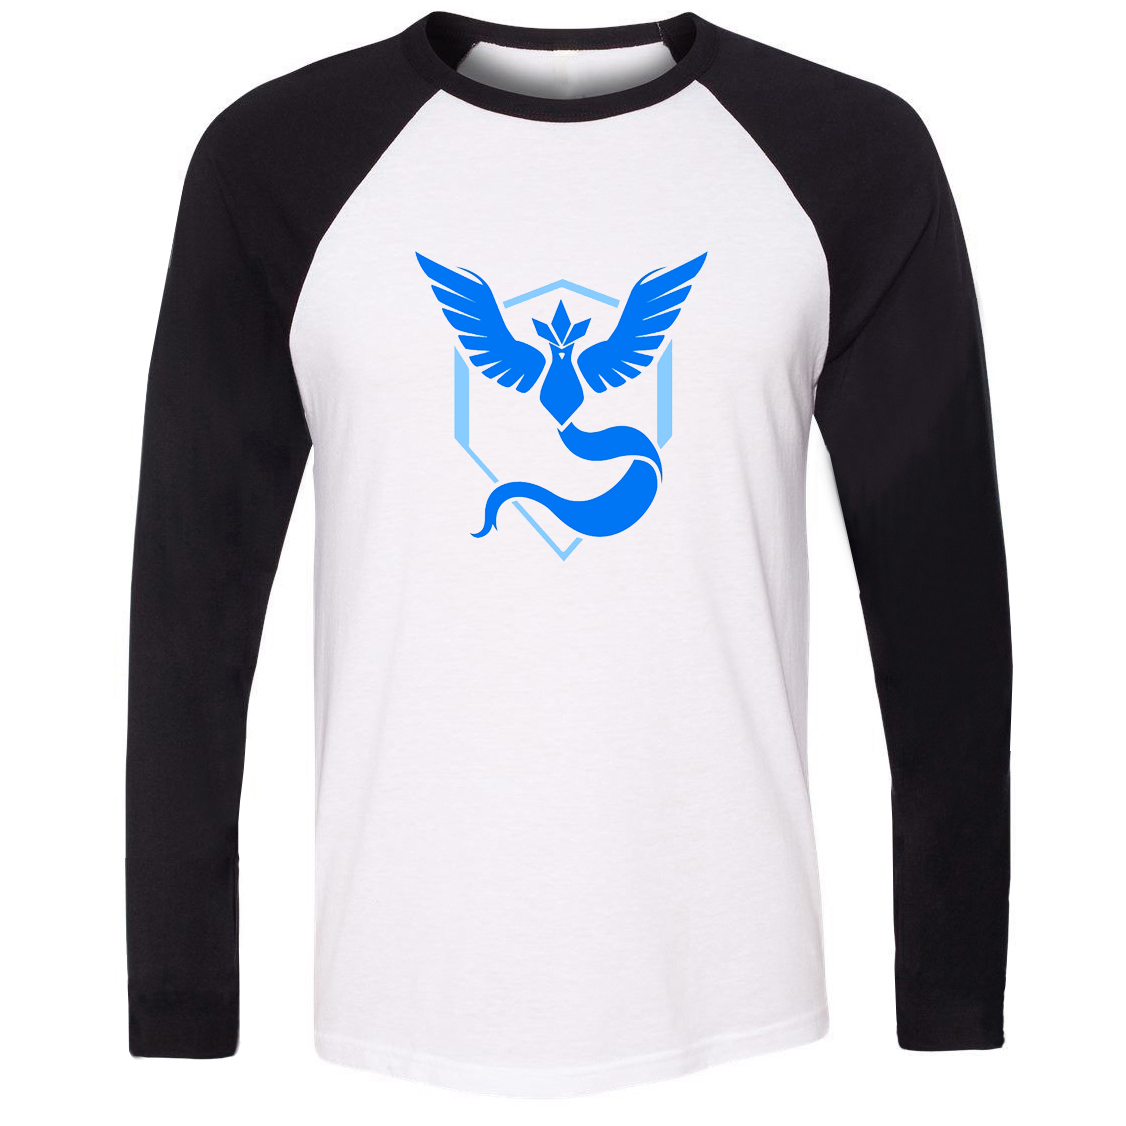 New Hot Unisex T-shirt Pokemon Go Game Fans Articuno Team Blue Team Pattern Raglan Long Sleeve Men T shirt Boy print Tee Tops